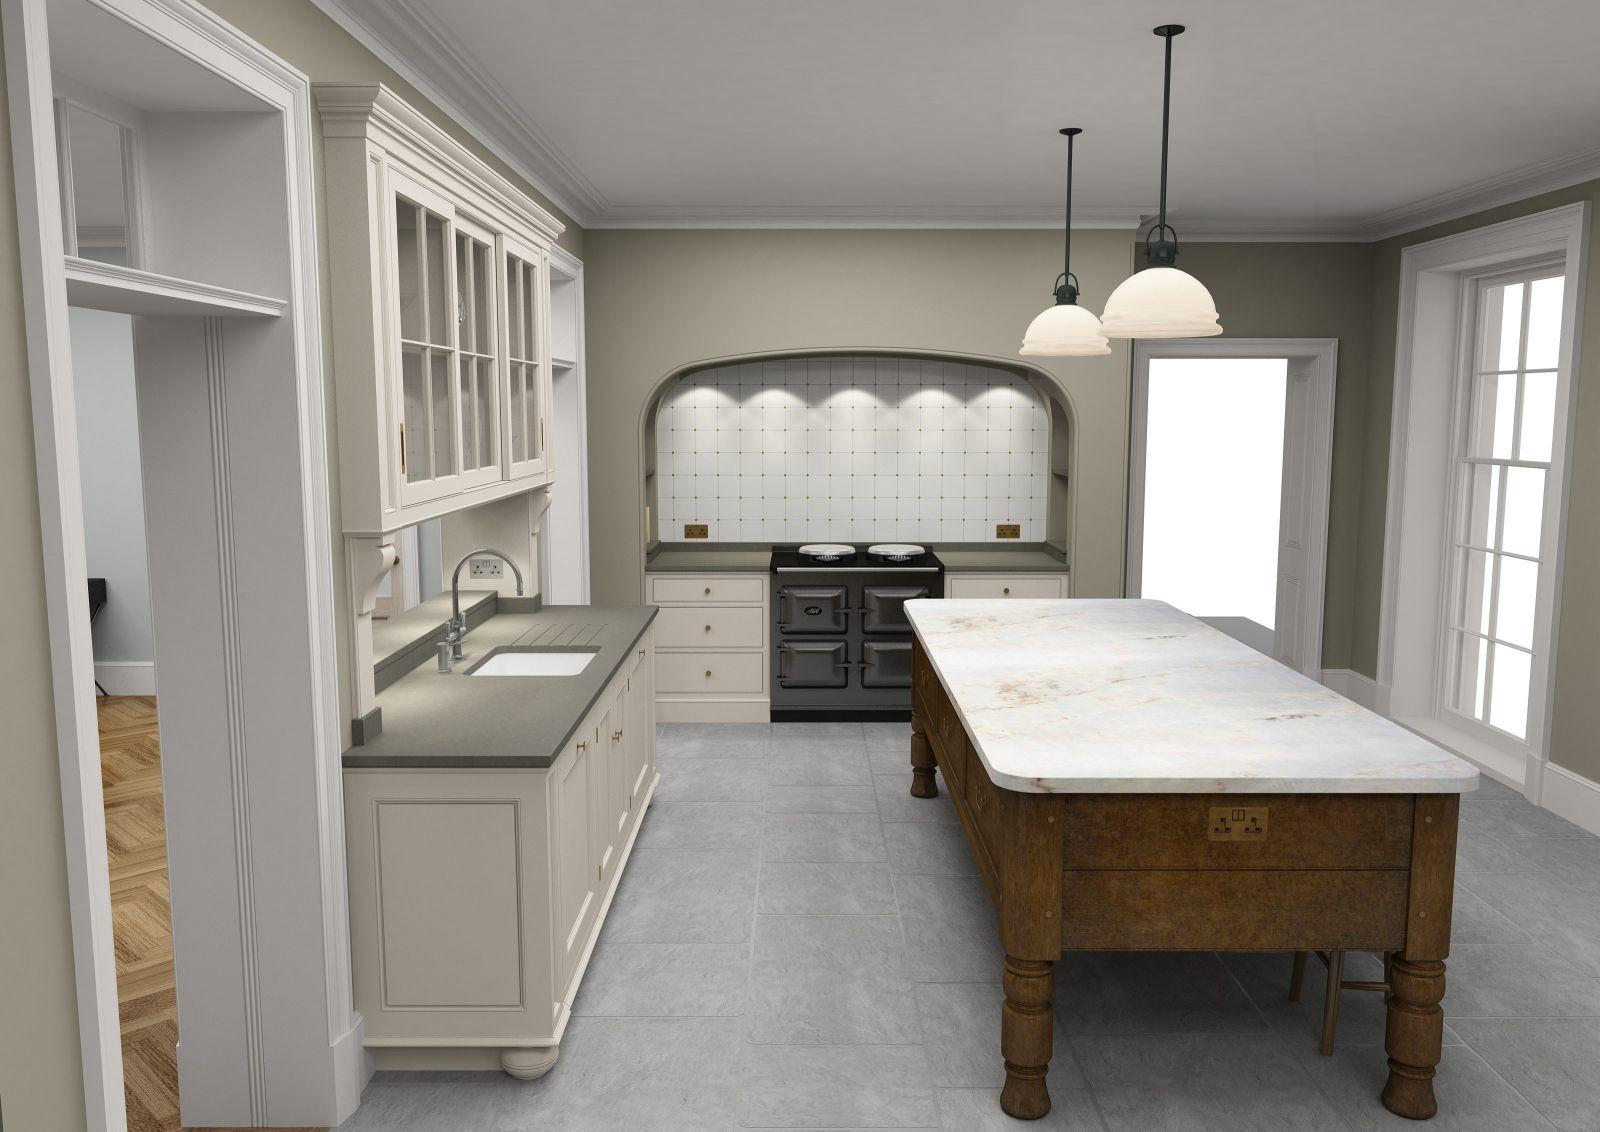 Designing Country House Kitchen Island Artichoke